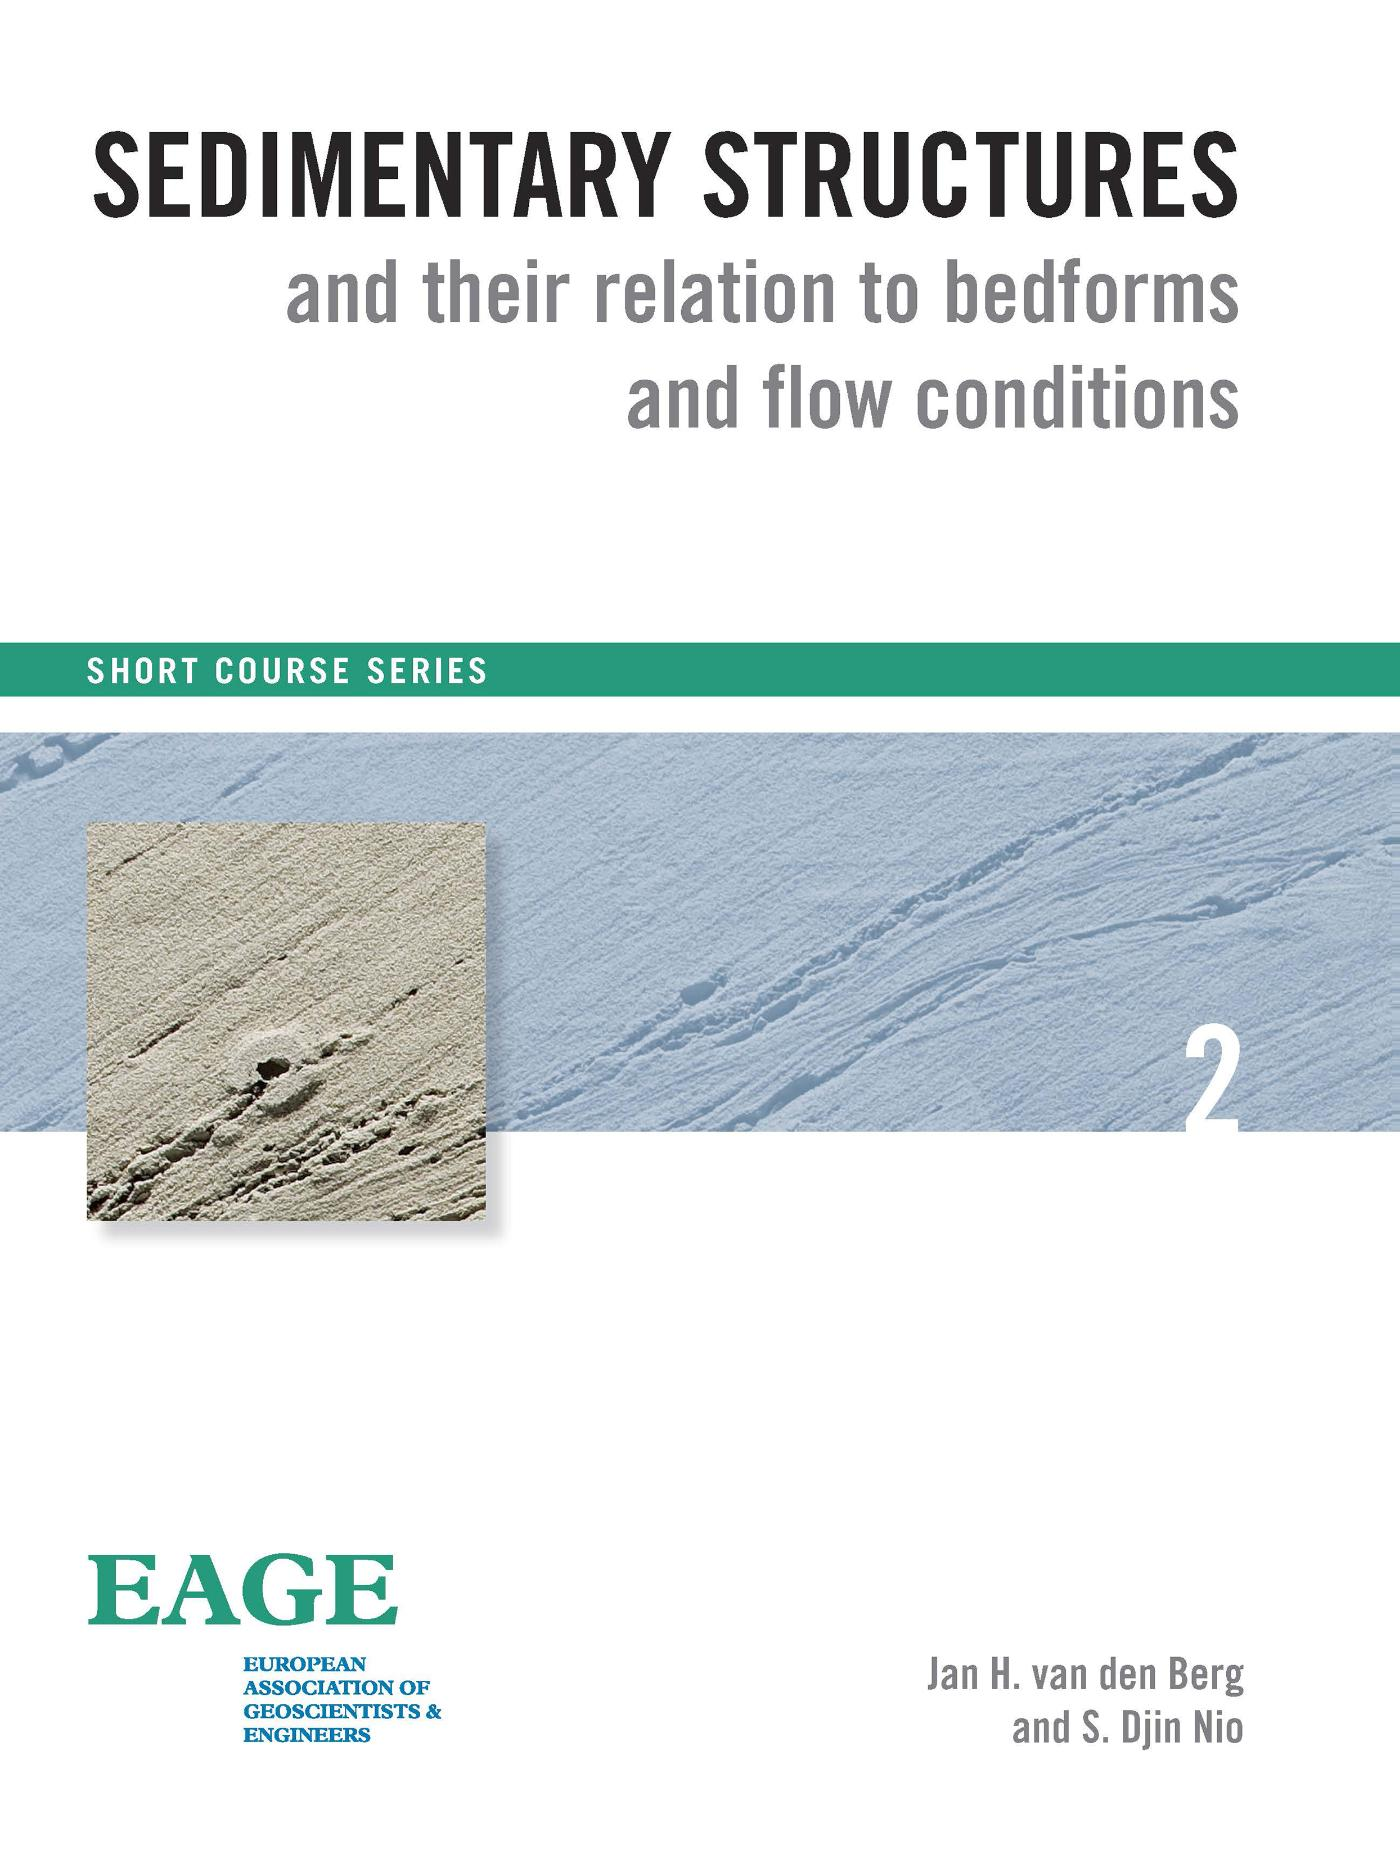 Sedimentary structures and their relation to bedforms and flow conditions